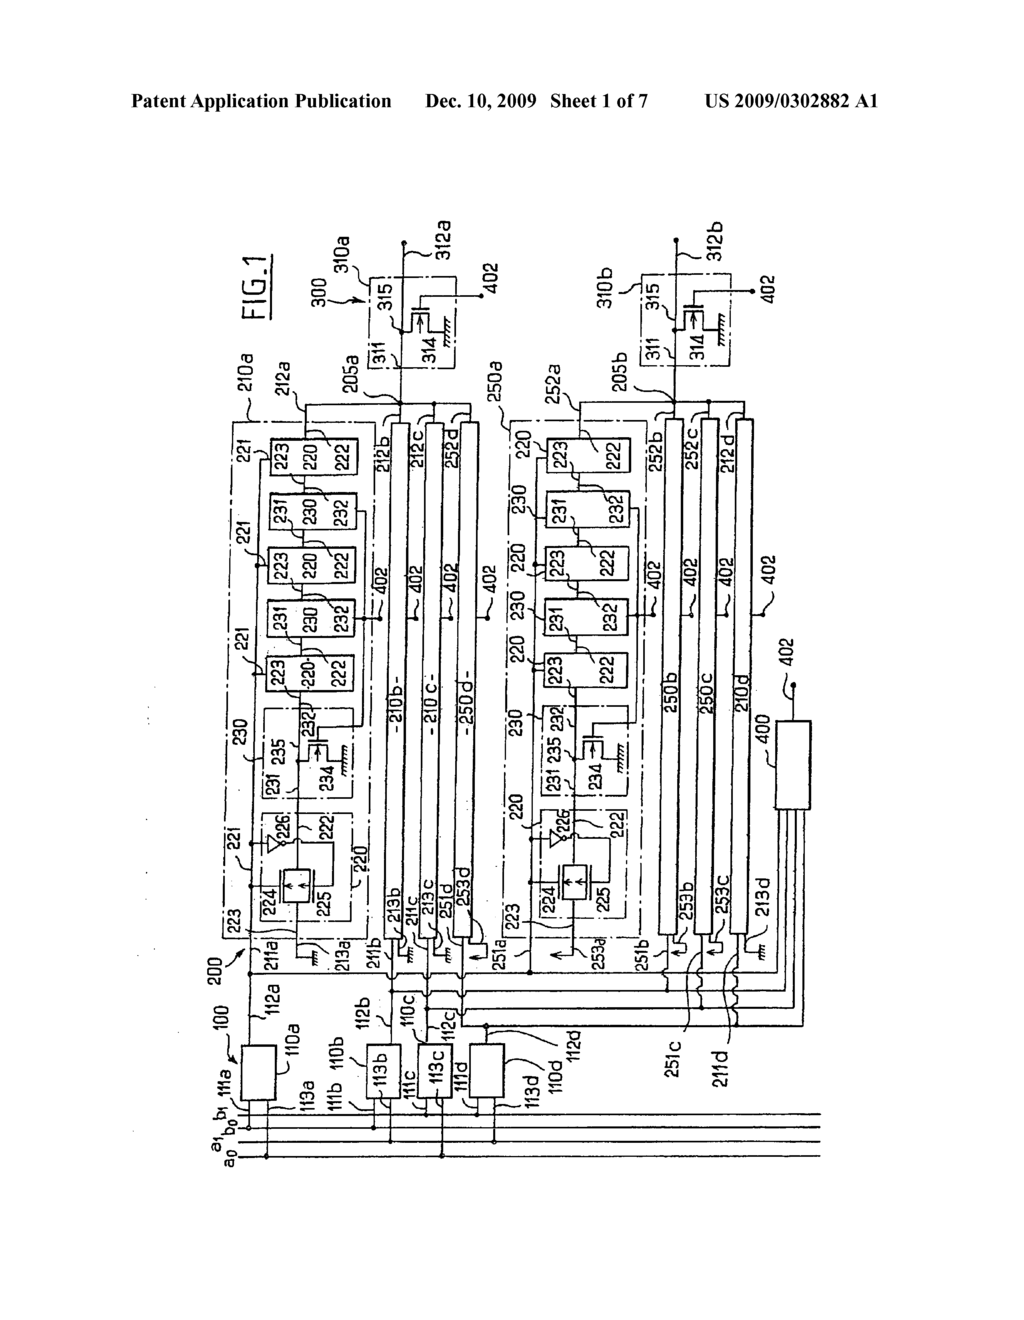 hight resolution of device forming a logic gate for minimizing the differences in electrical of electro magnetic behavior in an intergrated circuit manipulating a secret